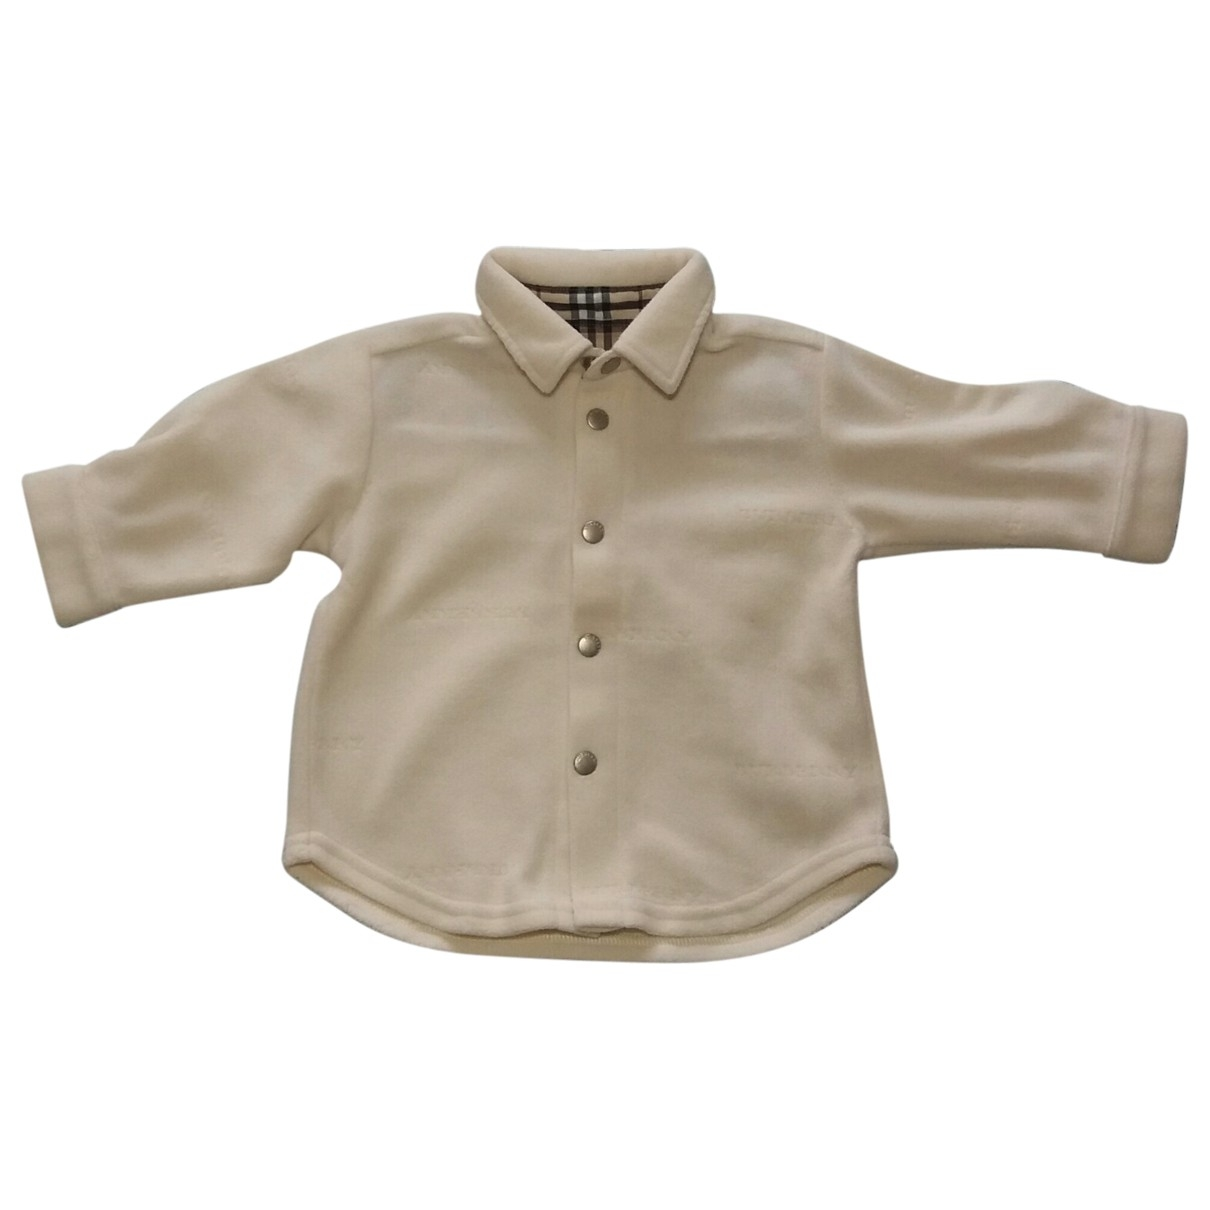 Burberry \N Ecru Cotton  top for Kids 3 months - until 24 inches UK